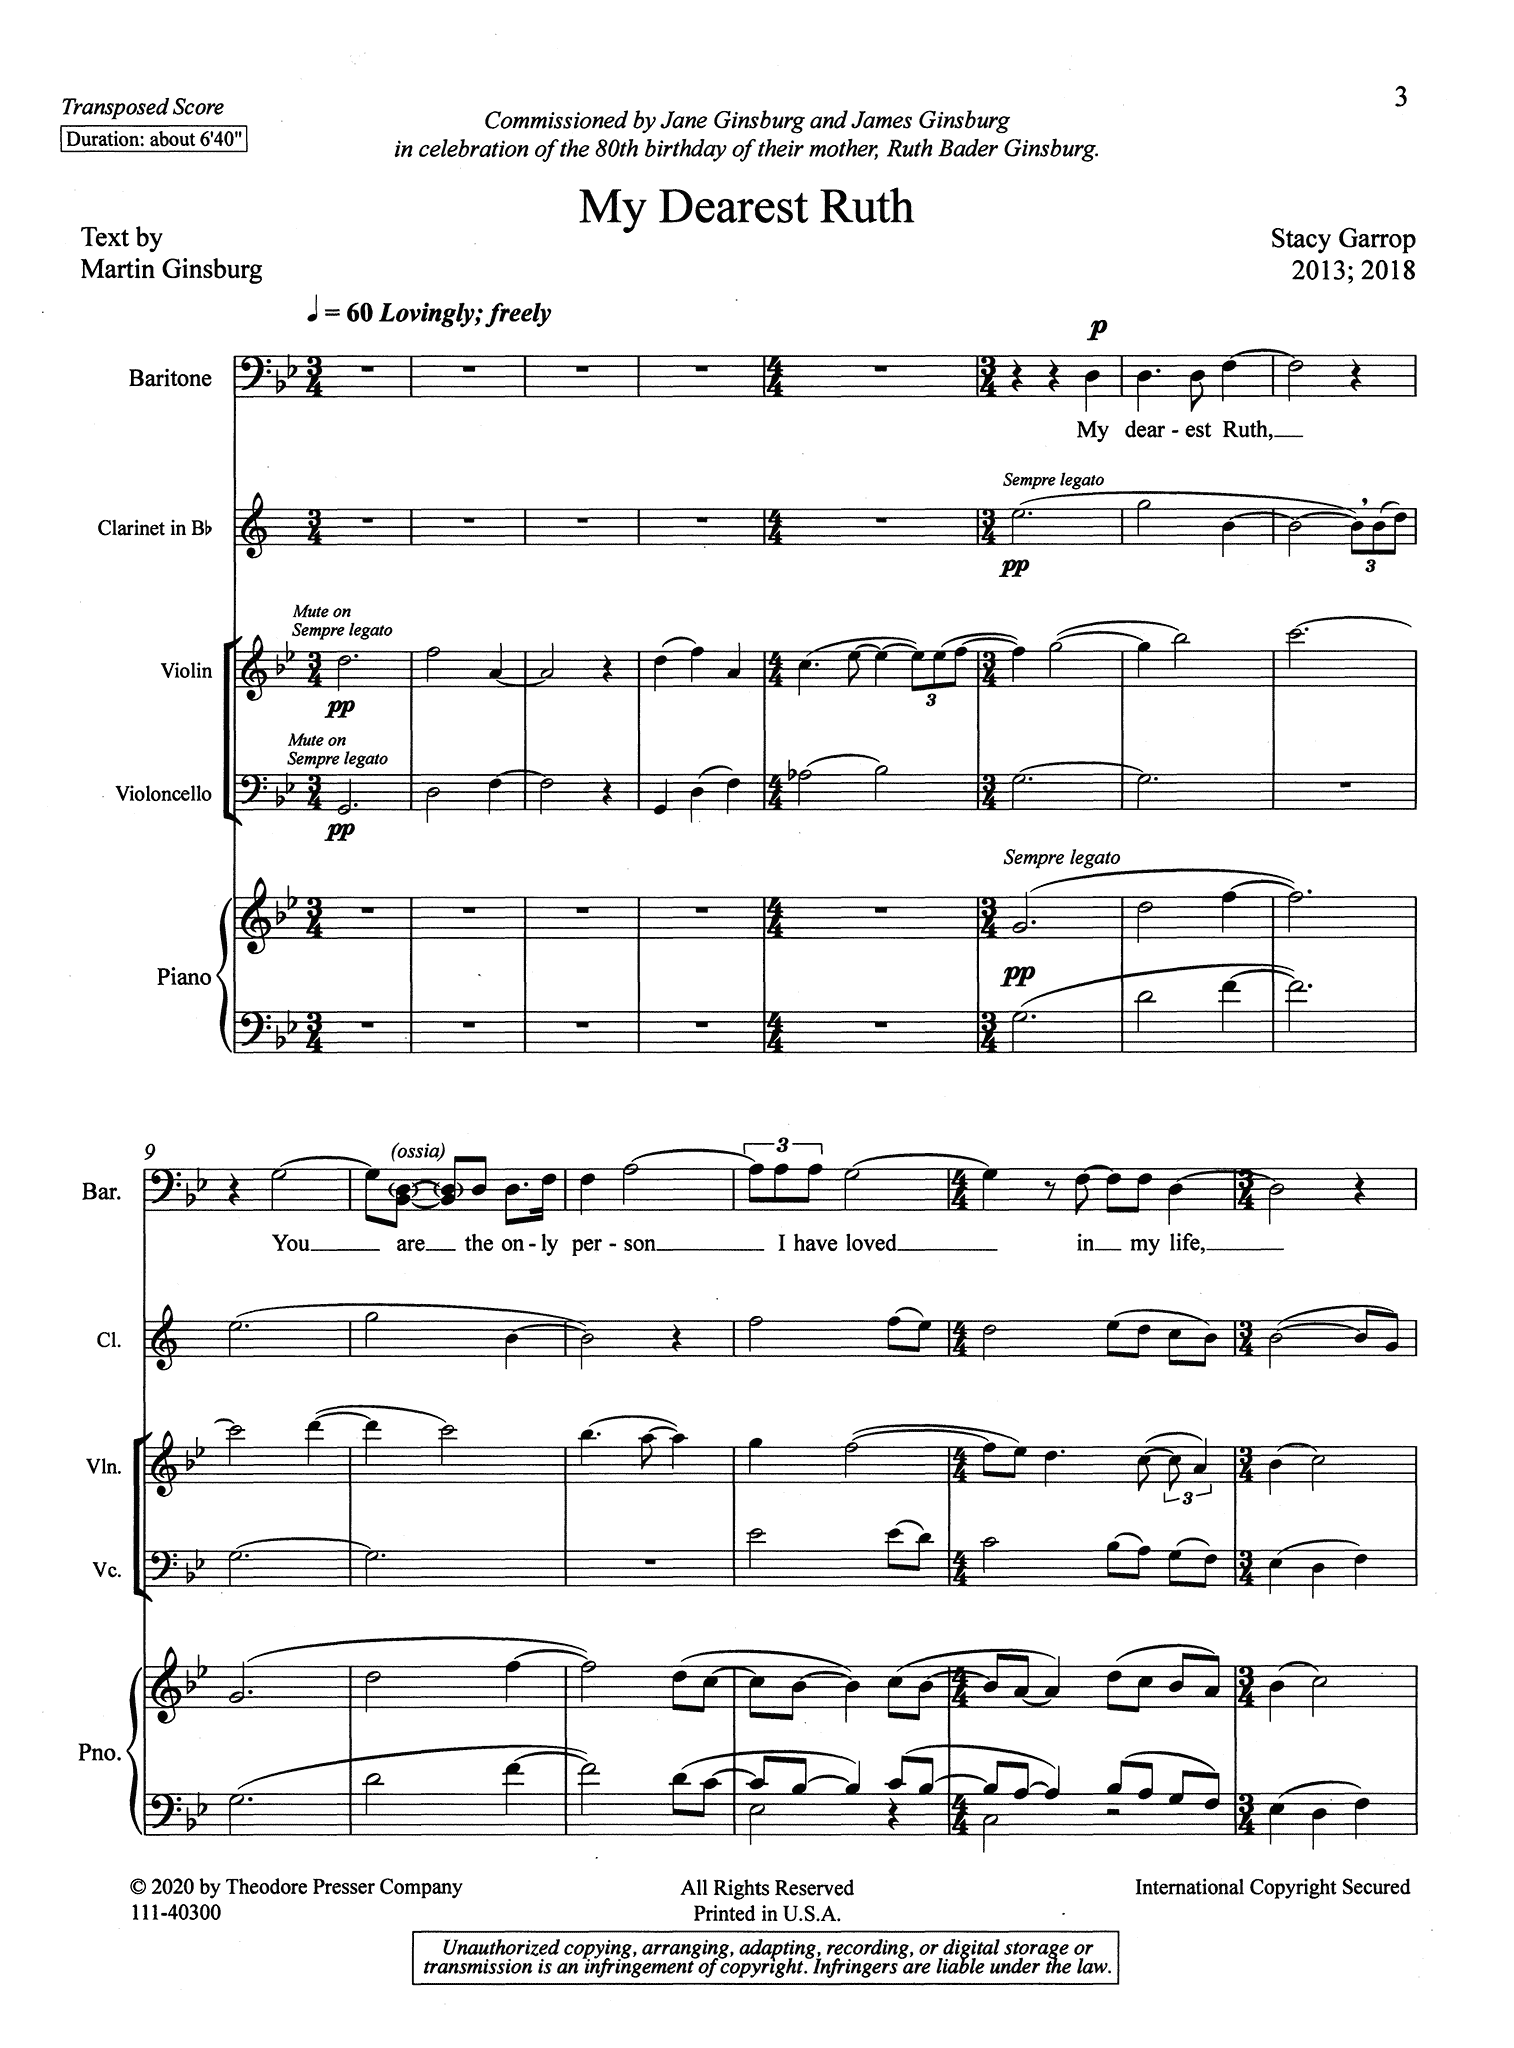 Stacy Garrop My Dearest Ruth for baritone, score page 3